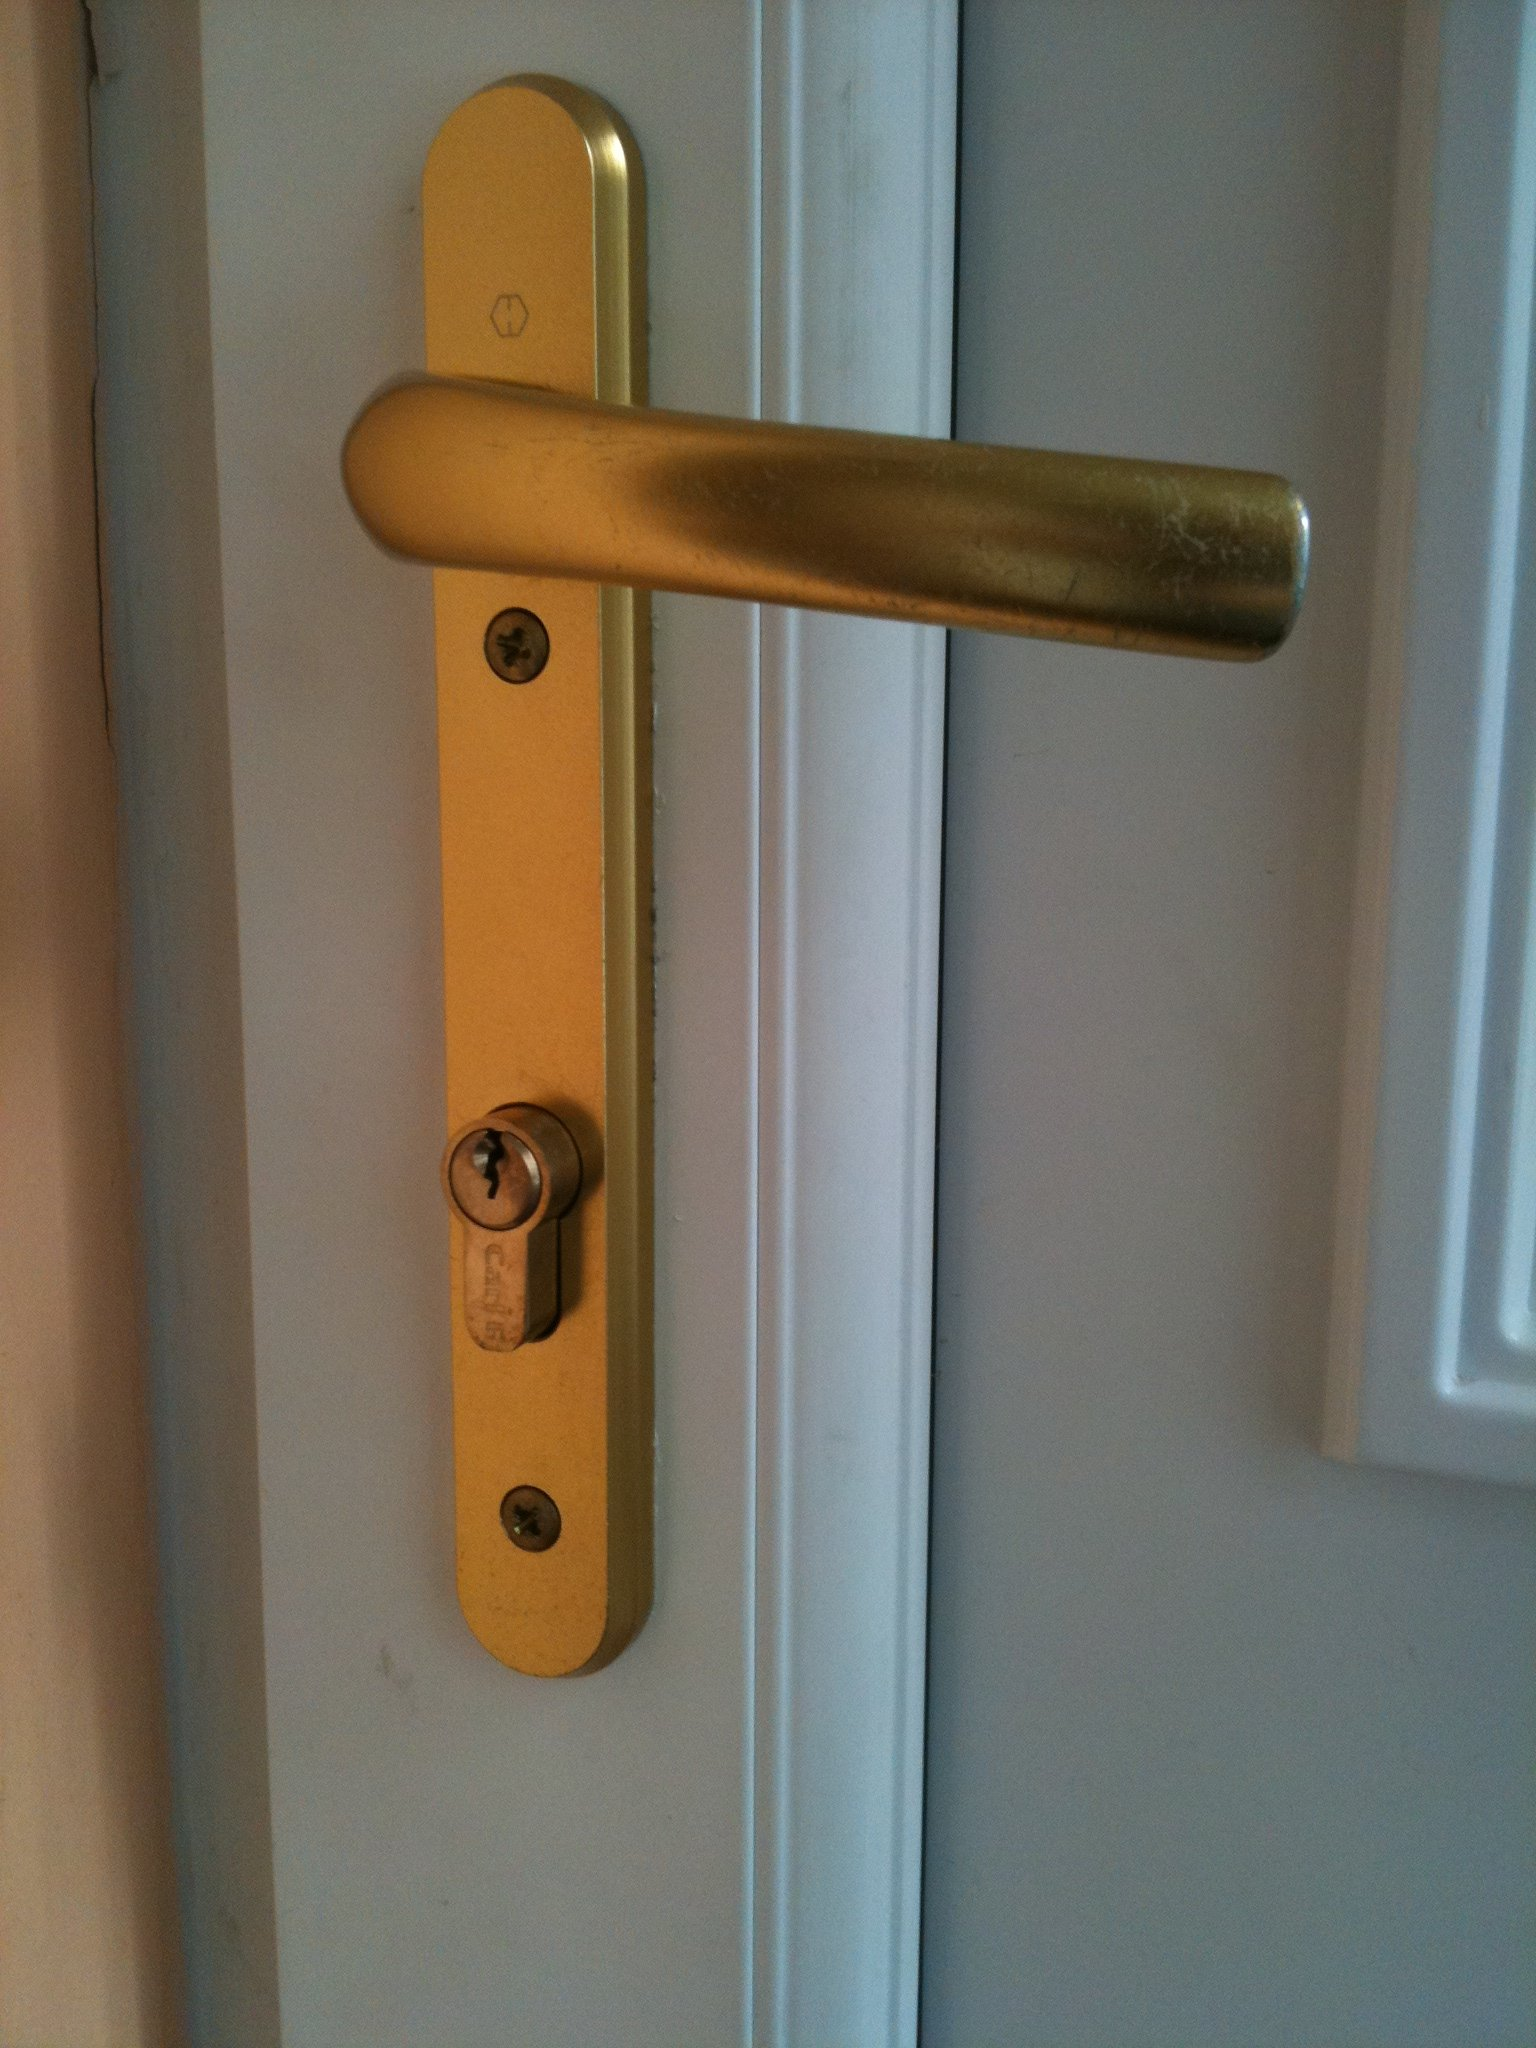 How Secure Is My UPVC Door? By Alcatraz Edinburgh Locksmiths